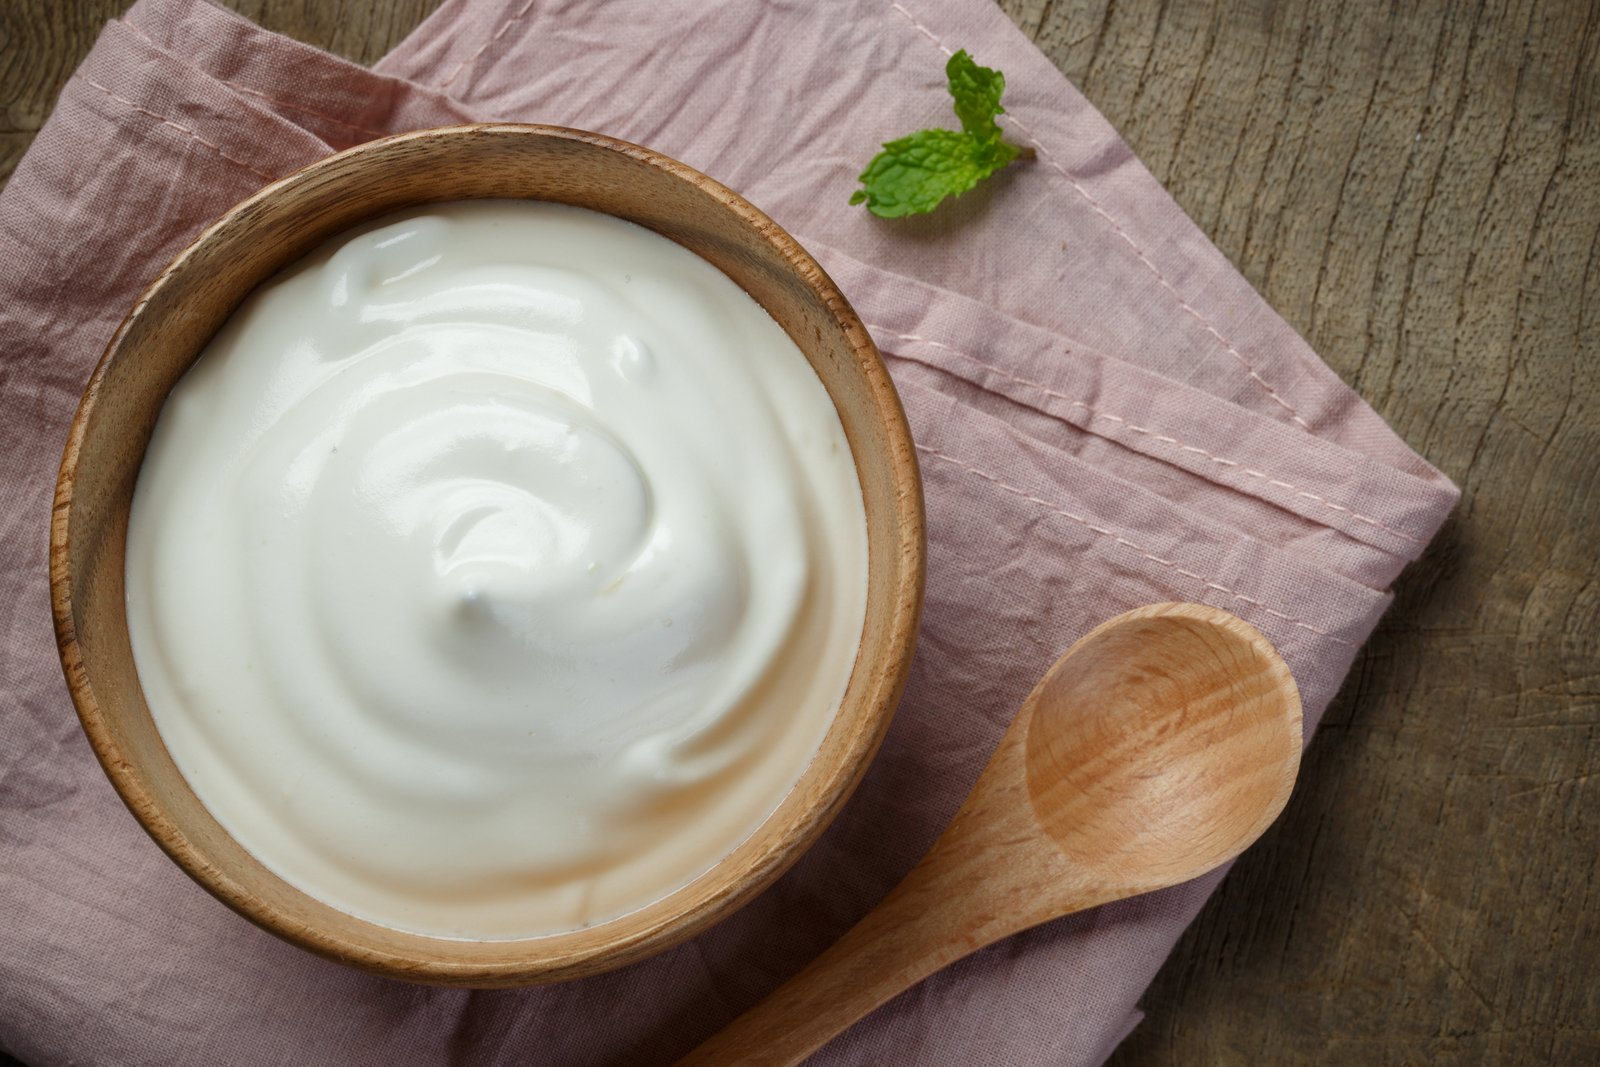 How To Make Fresh Homemade Yogurt Curd